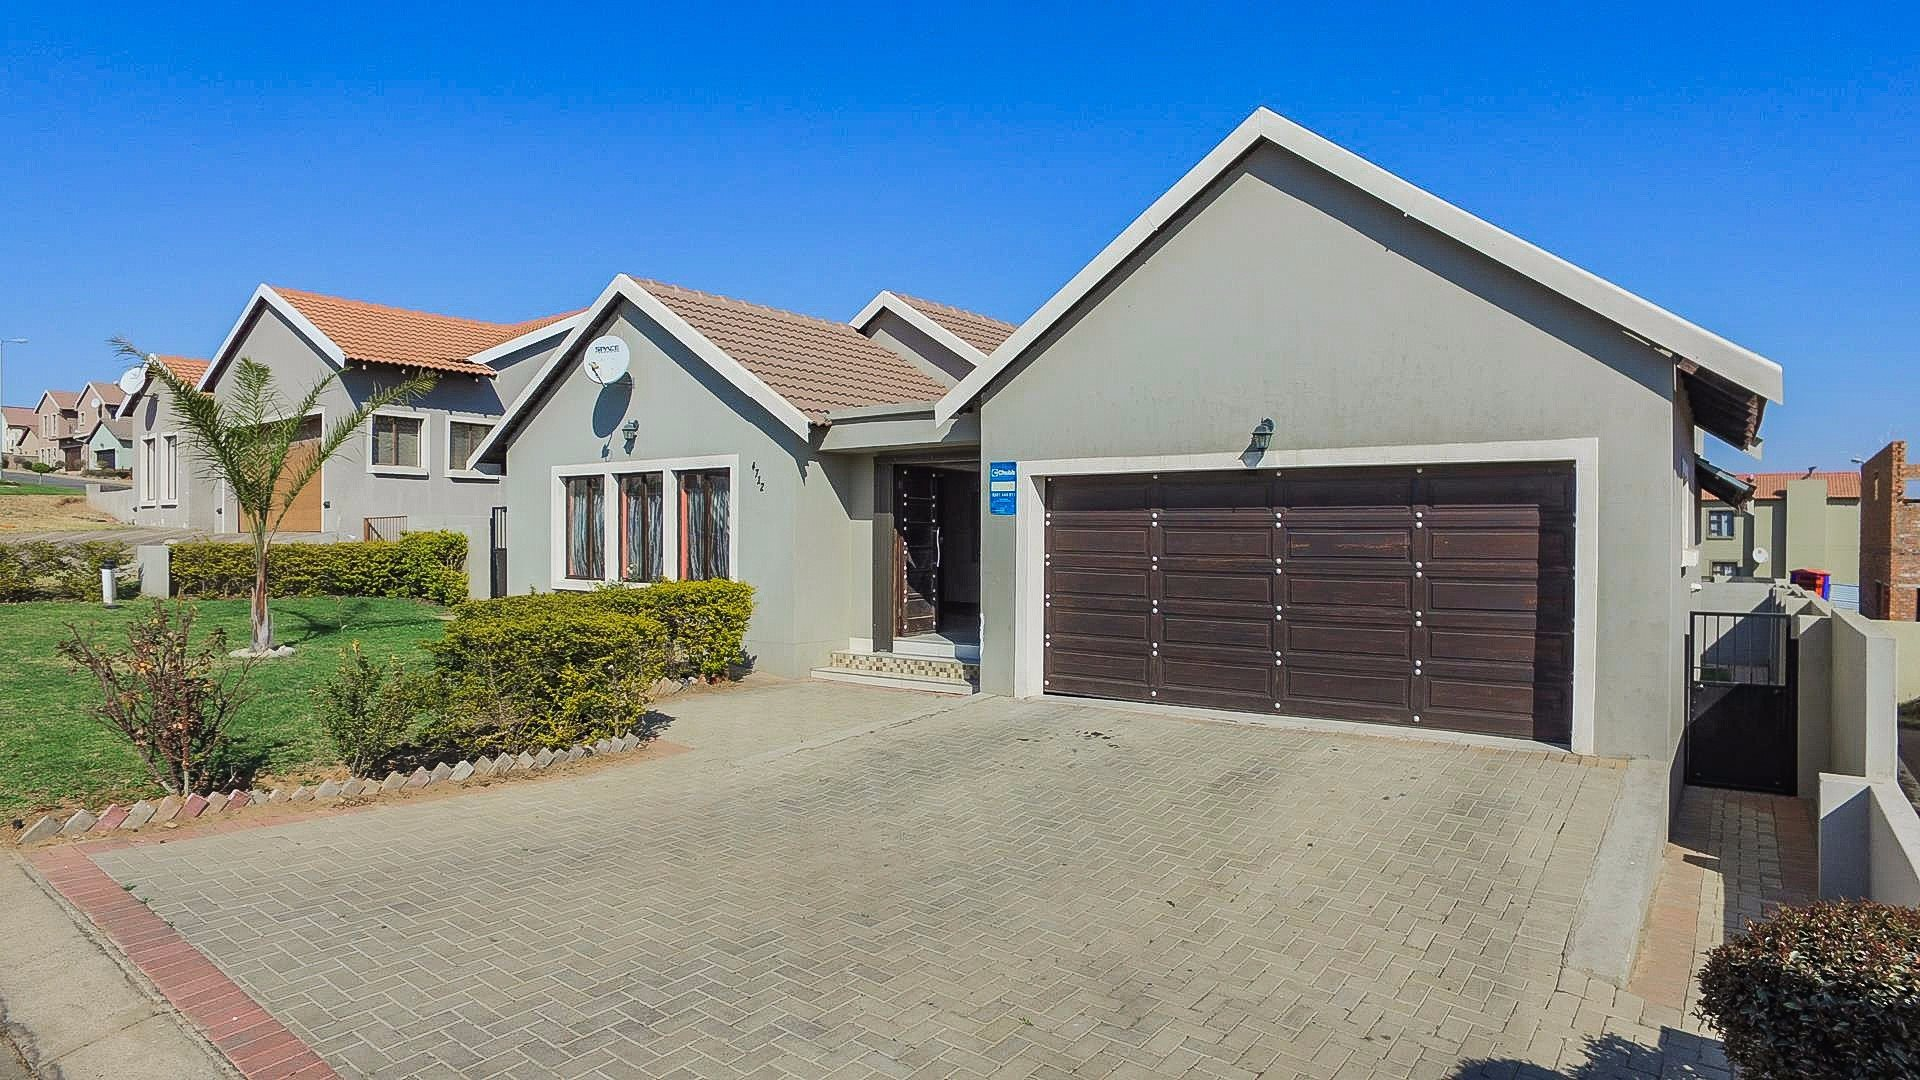 Centurion summerfields estate property houses for sale for Centurion homes